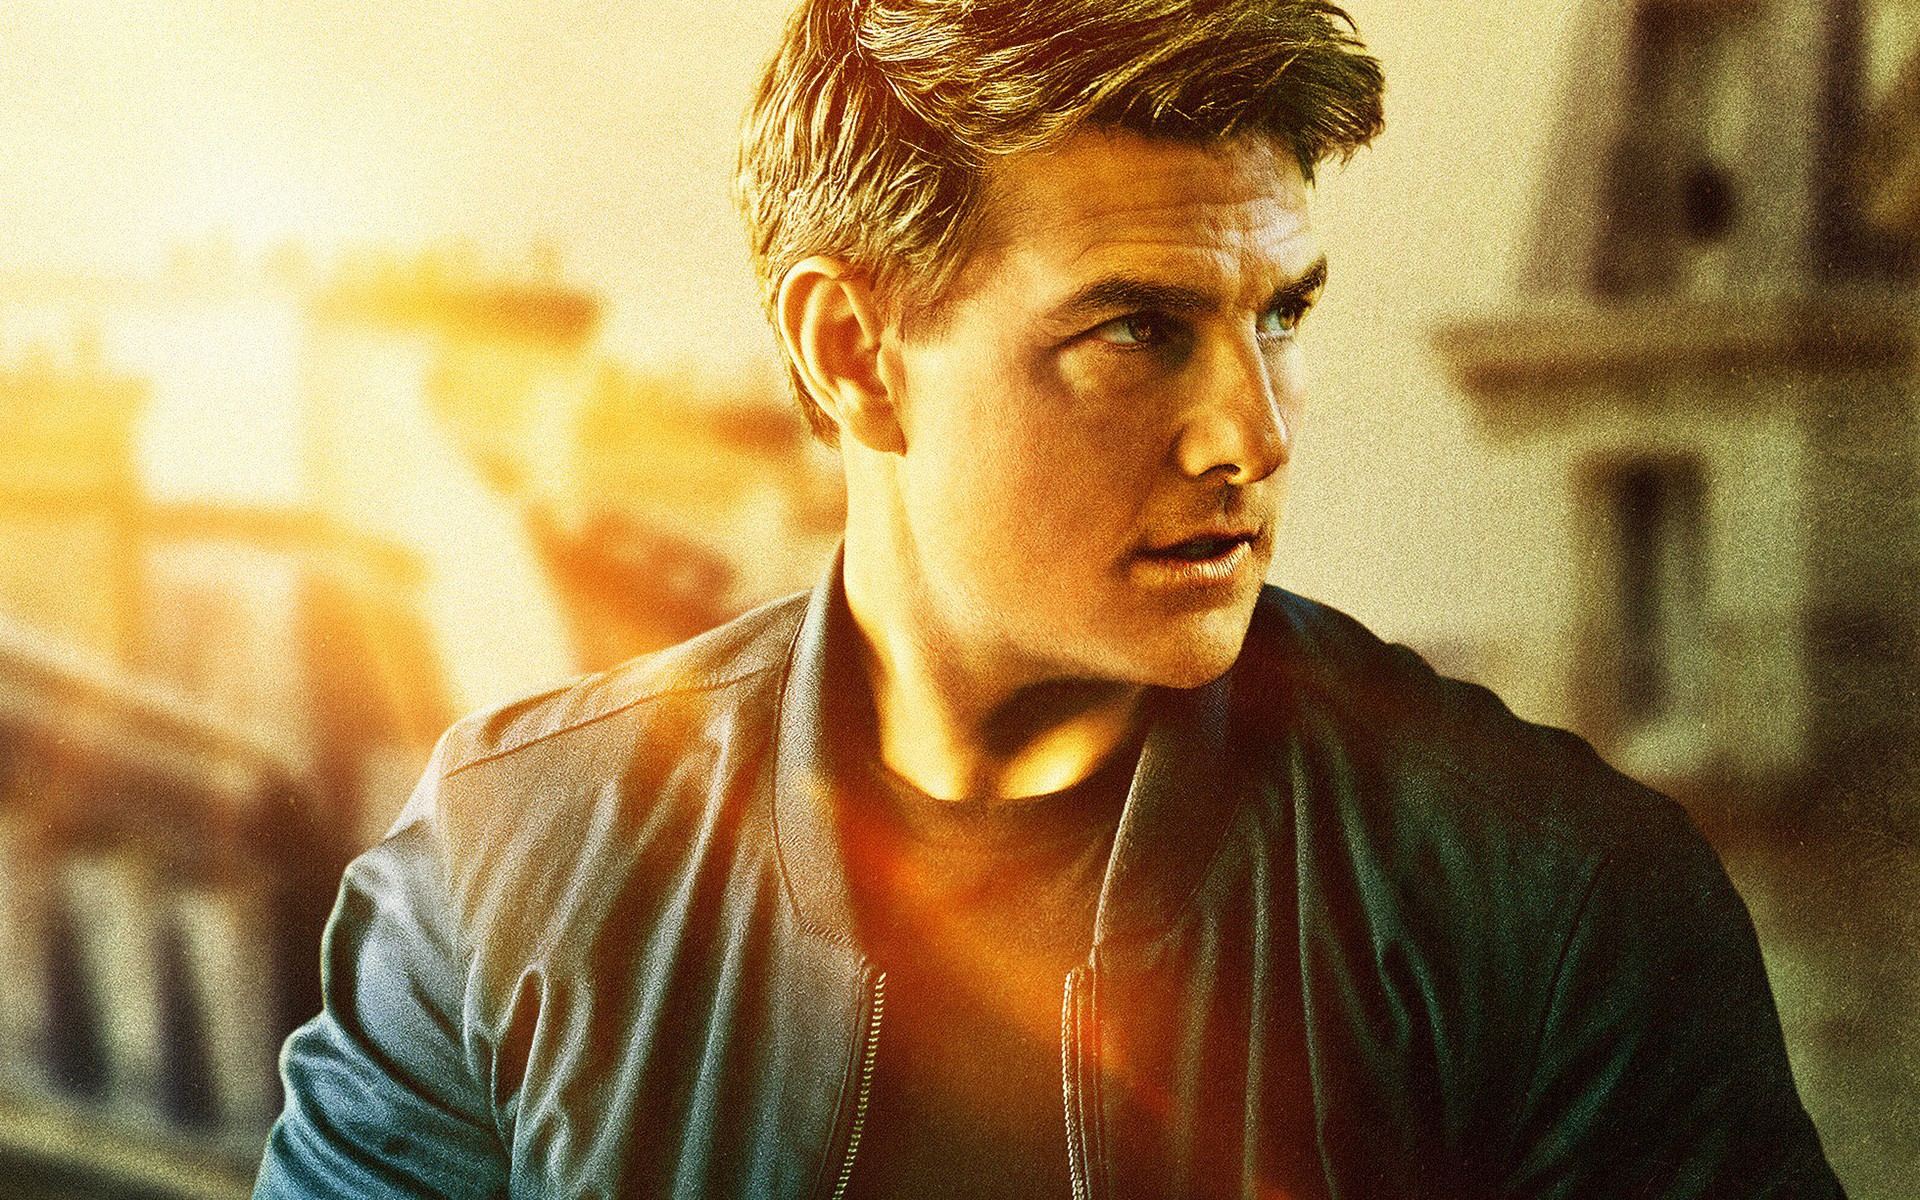 Tom Cruise Photo in Mission Impossible Fallout Film Wallpaper